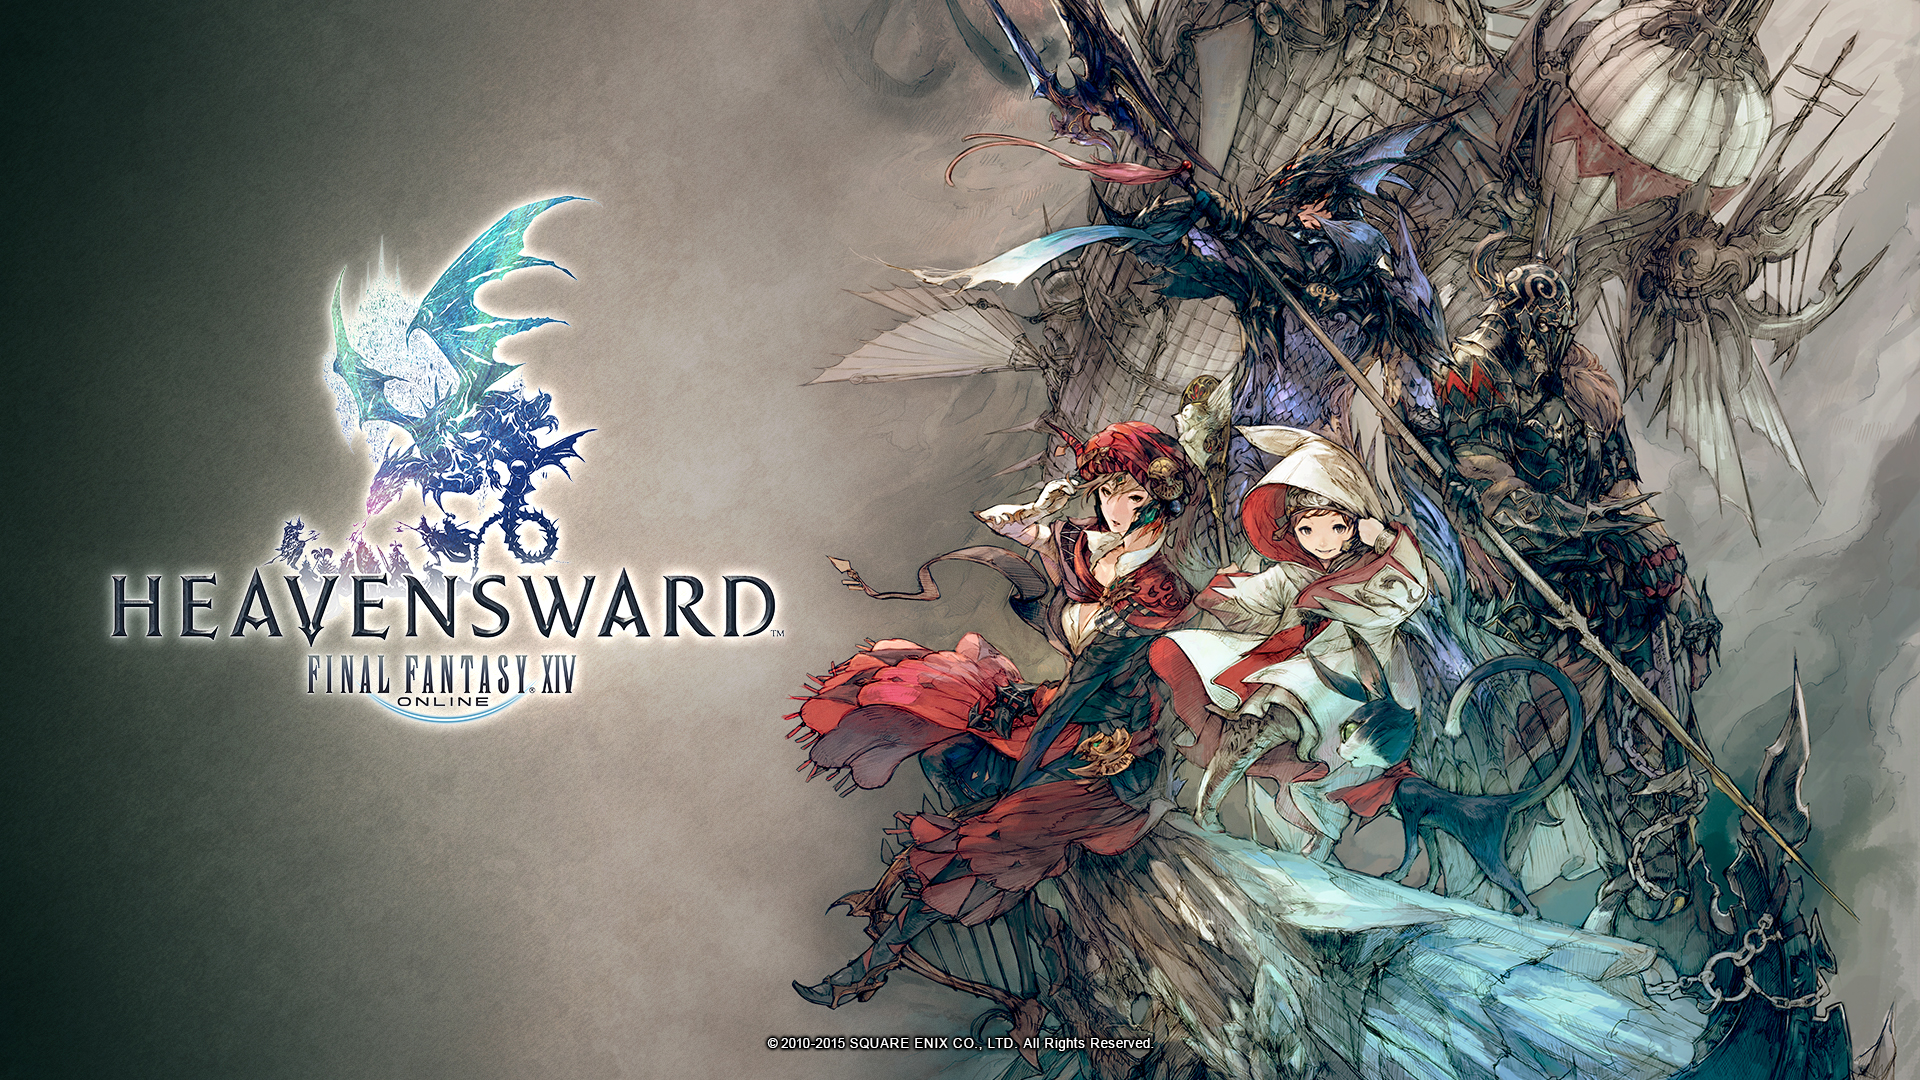 Final Fantasy XIV wallpapers | Final Fantasy Wiki | FANDOM powered ...